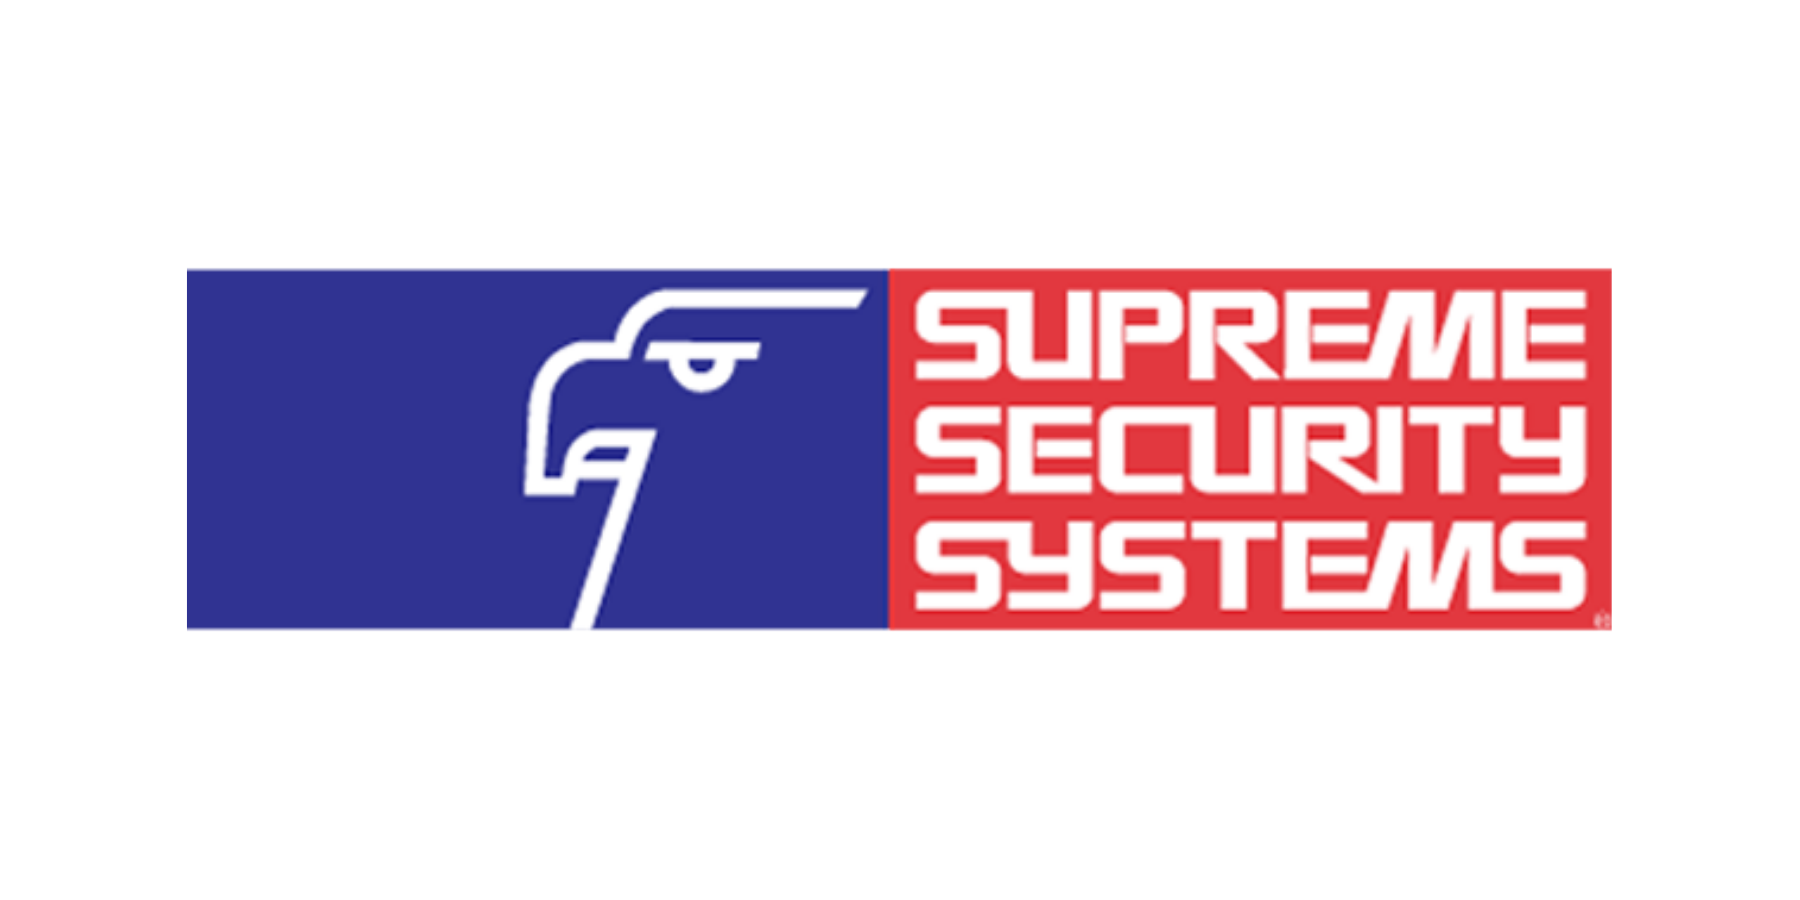 Supreme Security Systems